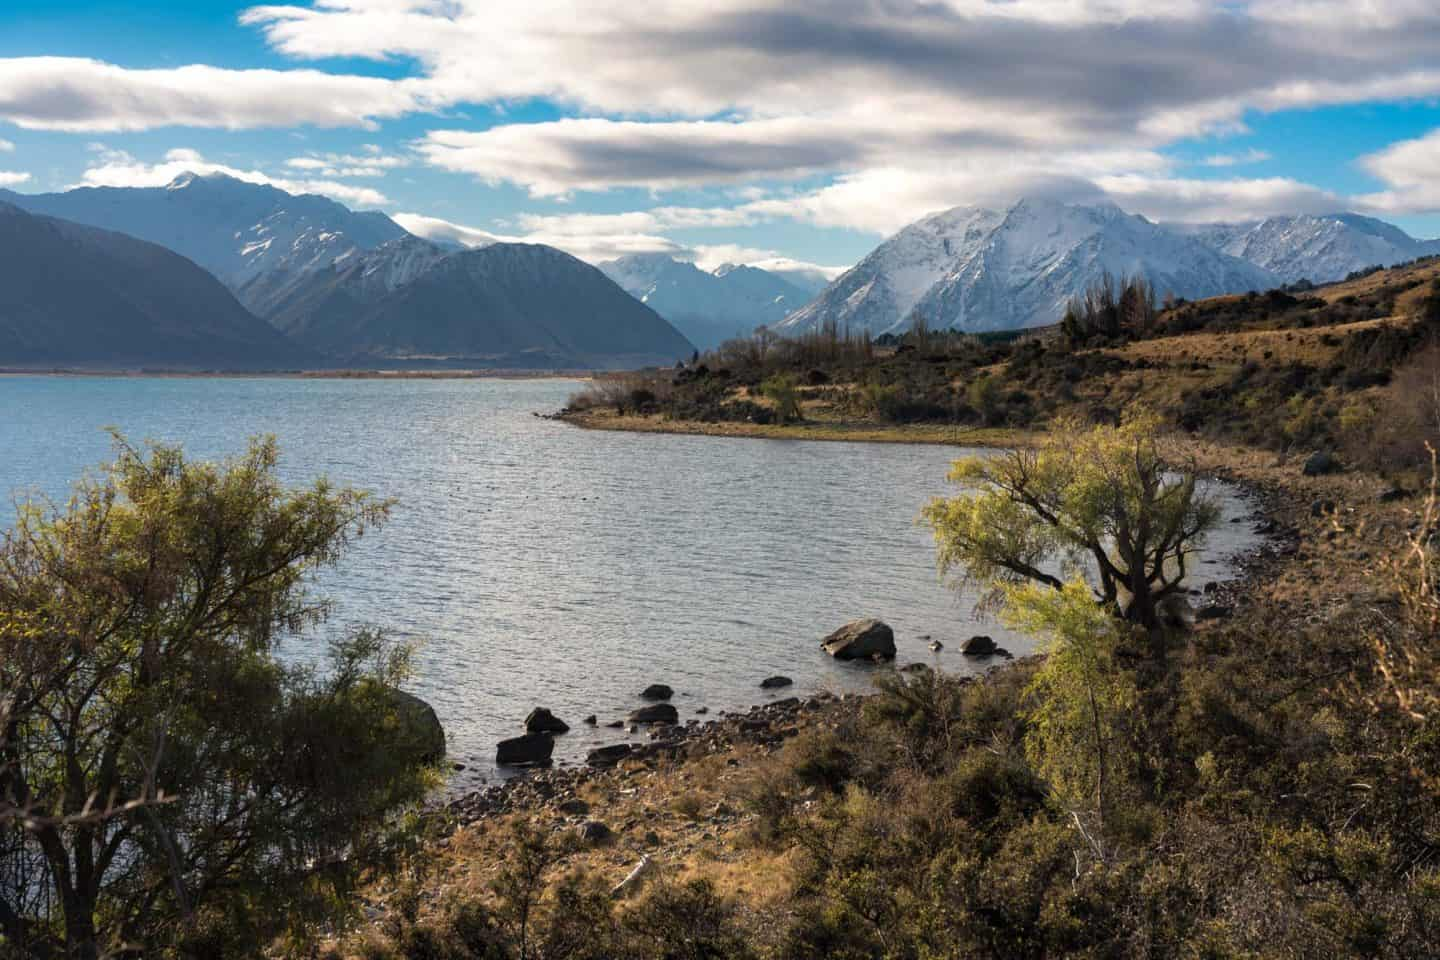 The Southern Alps at Lake Ohau provide impressive backdrops for New Zealand landscape photographers.